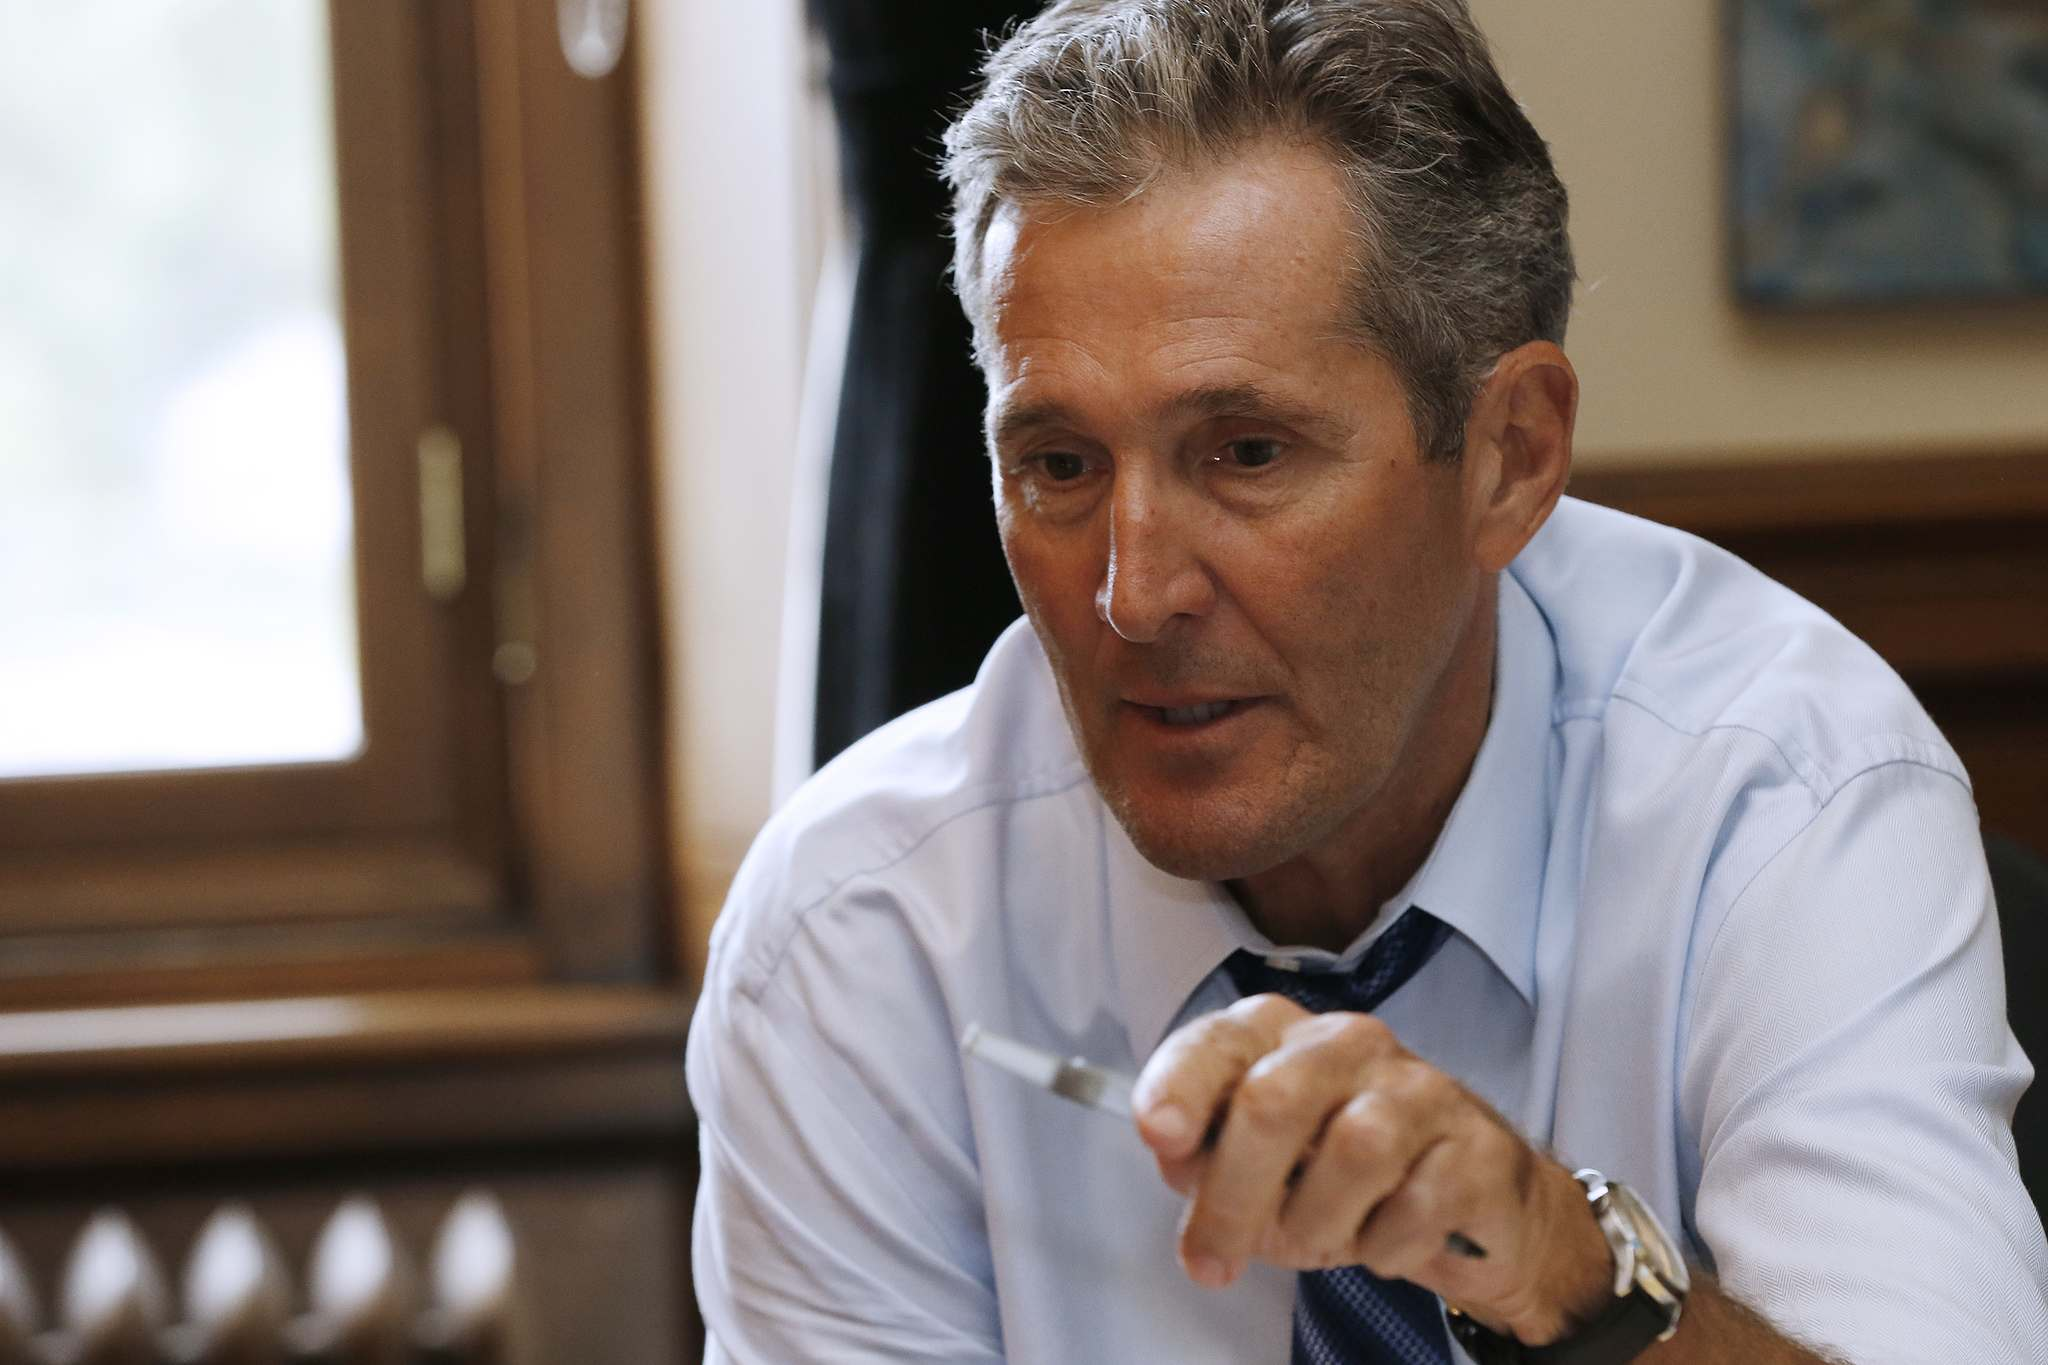 JOHN WOODS / WINNIPEG FREE PRESS</p><p>Manitoba Premier Brian Pallister talks about his travel and communication activities in his office at the Manitoba Legislature.</p>